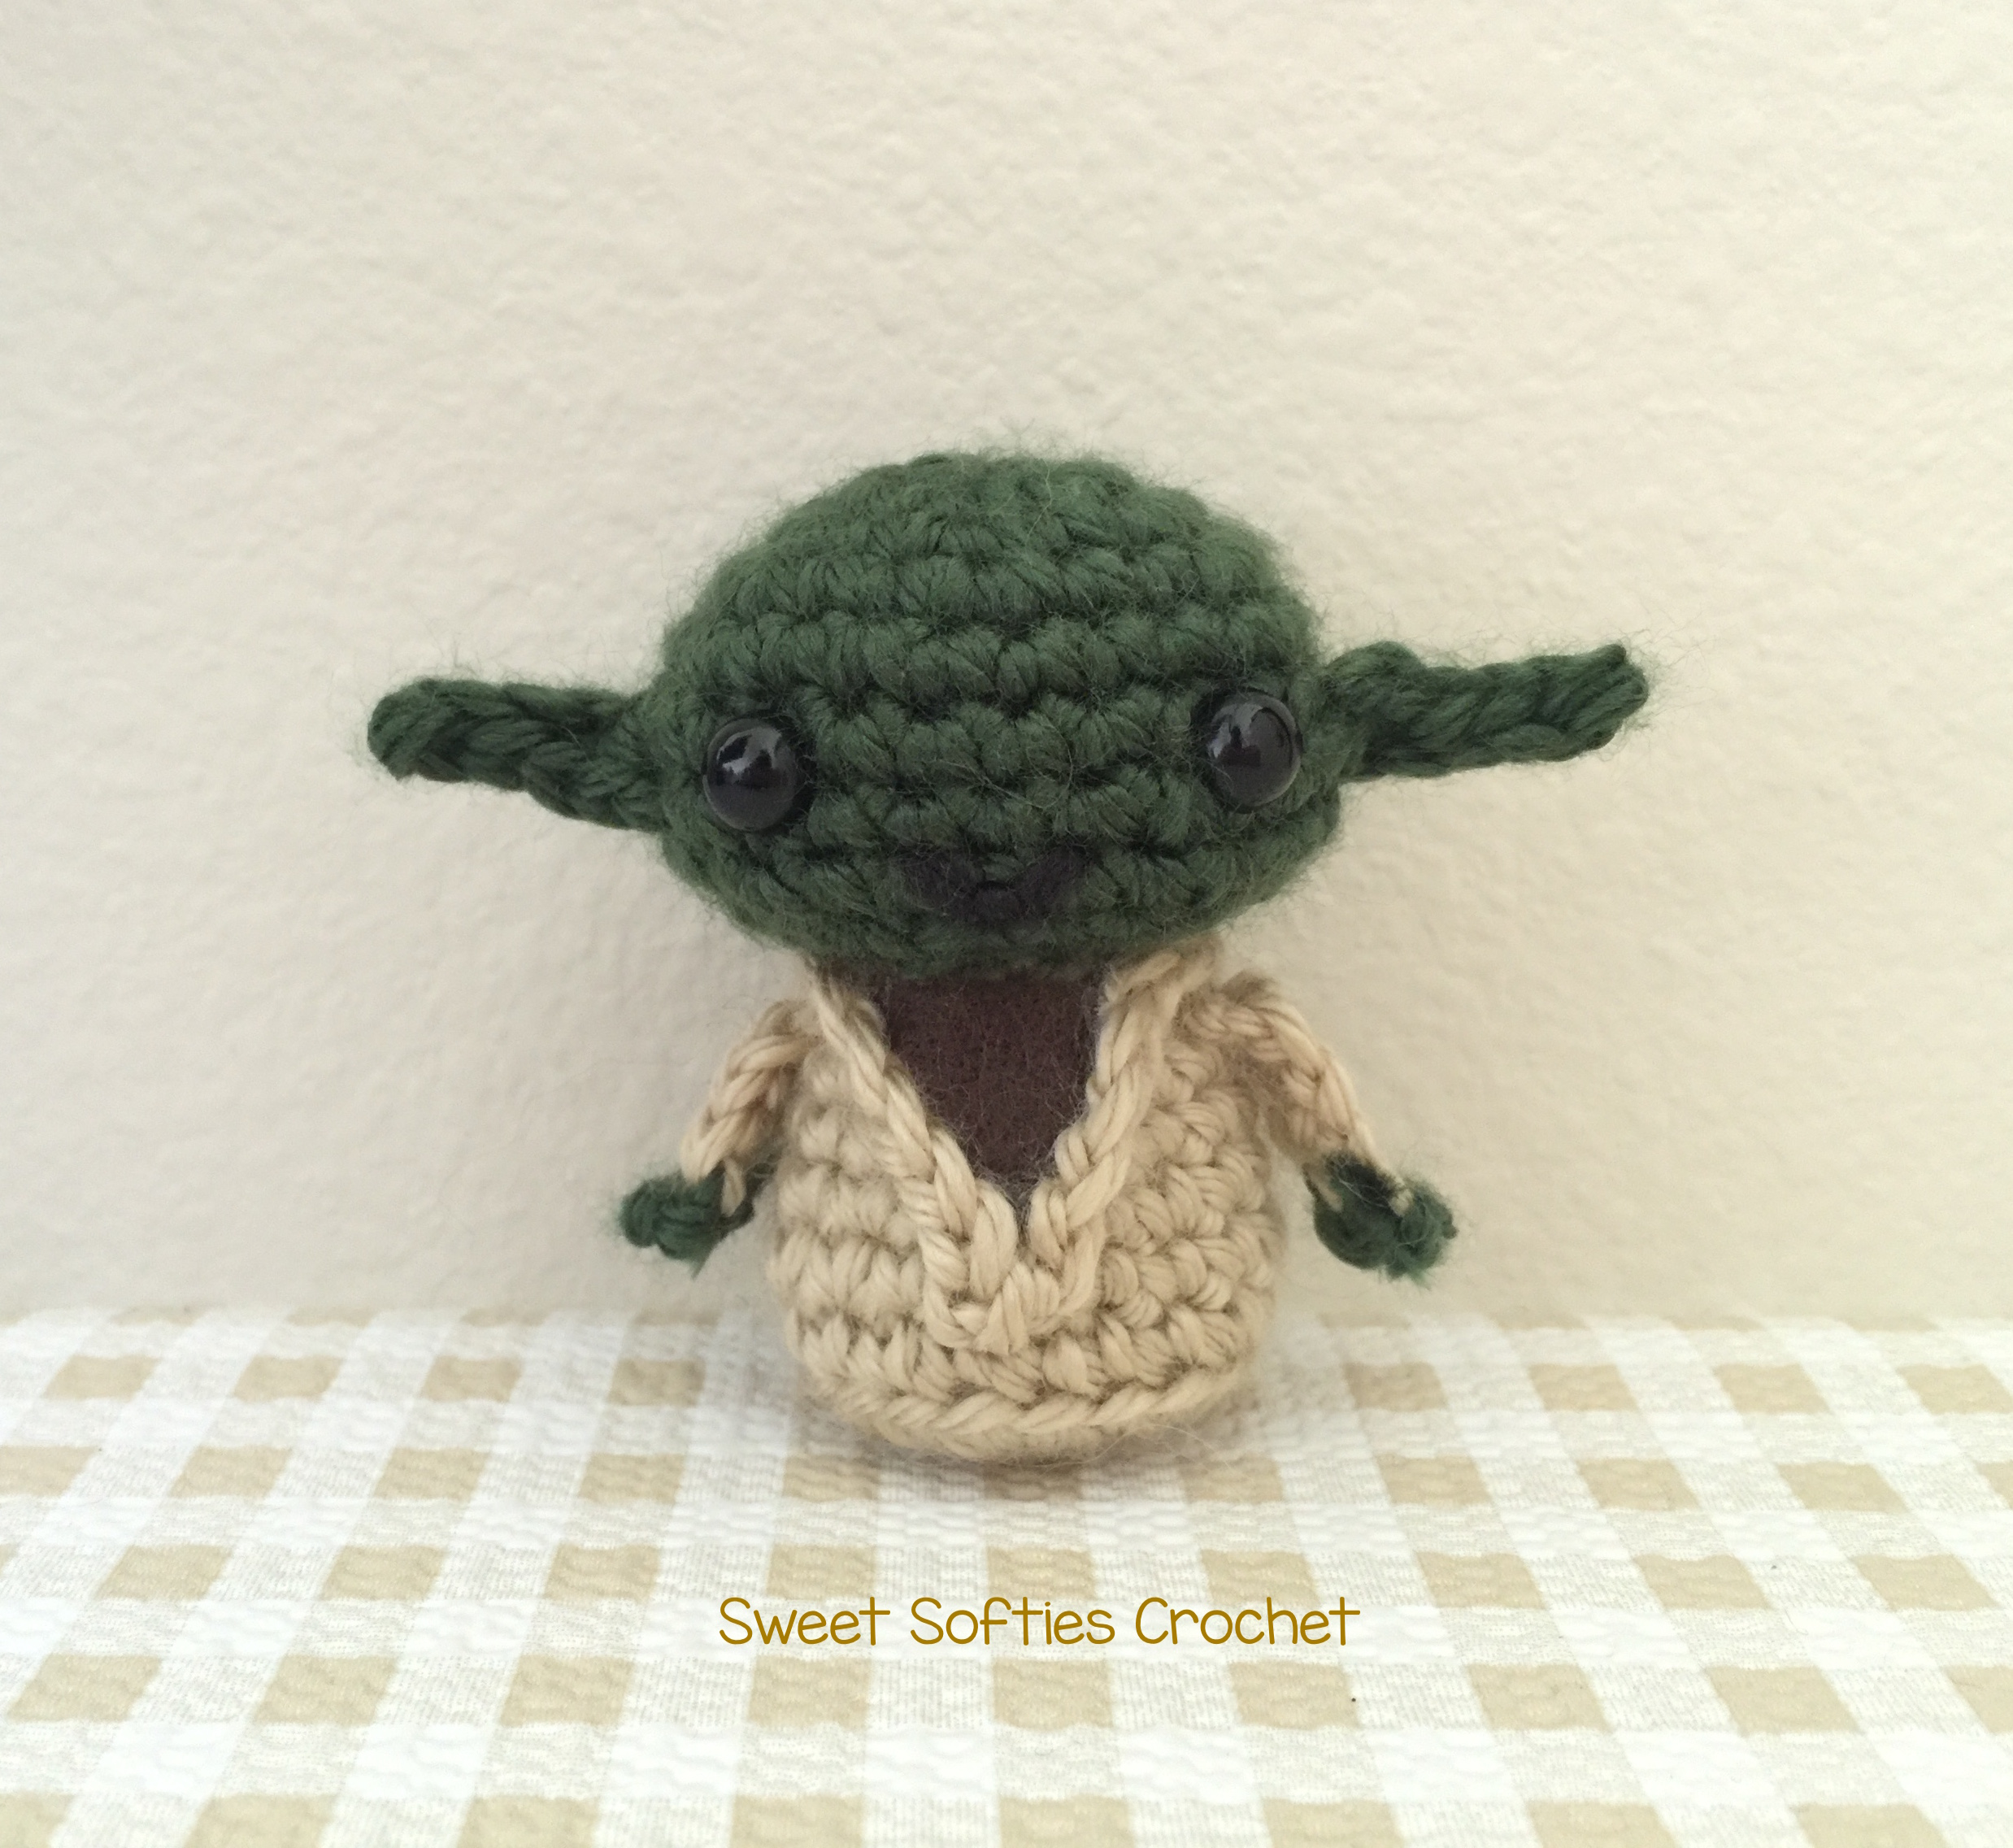 Mini Star Wars Yoda Amigurumi Doll